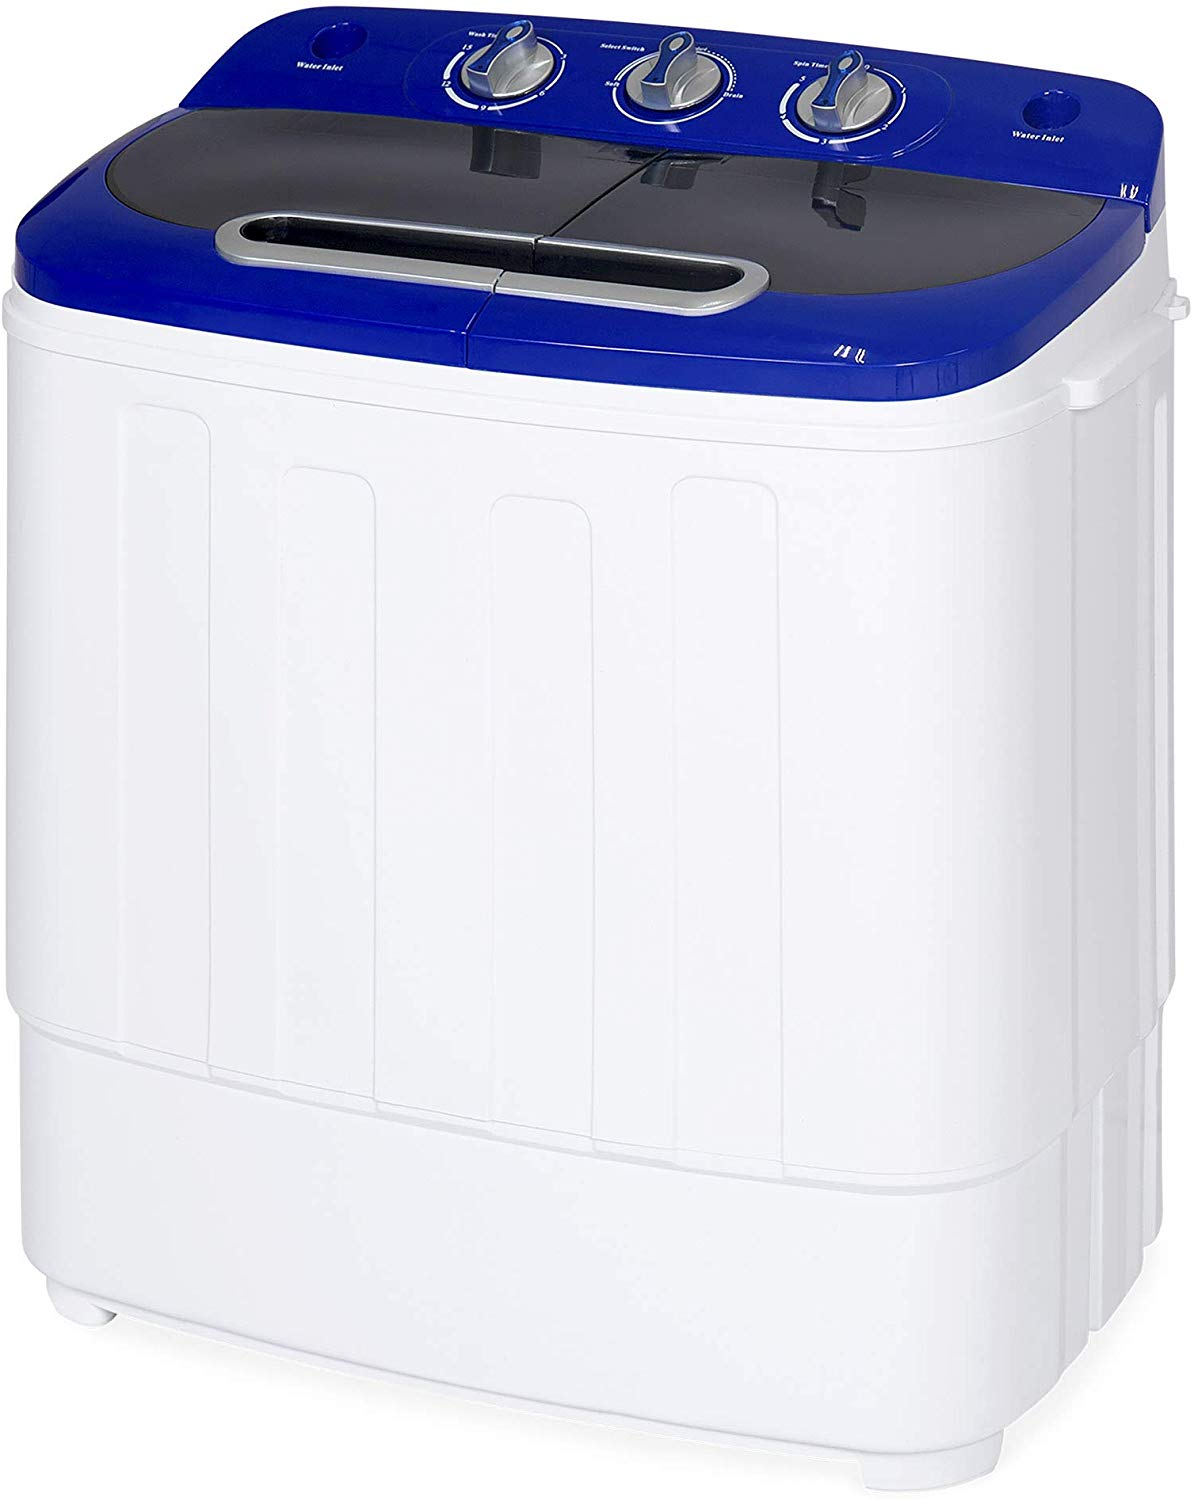 Best Portable Washer: Best Choice Products SKY2767